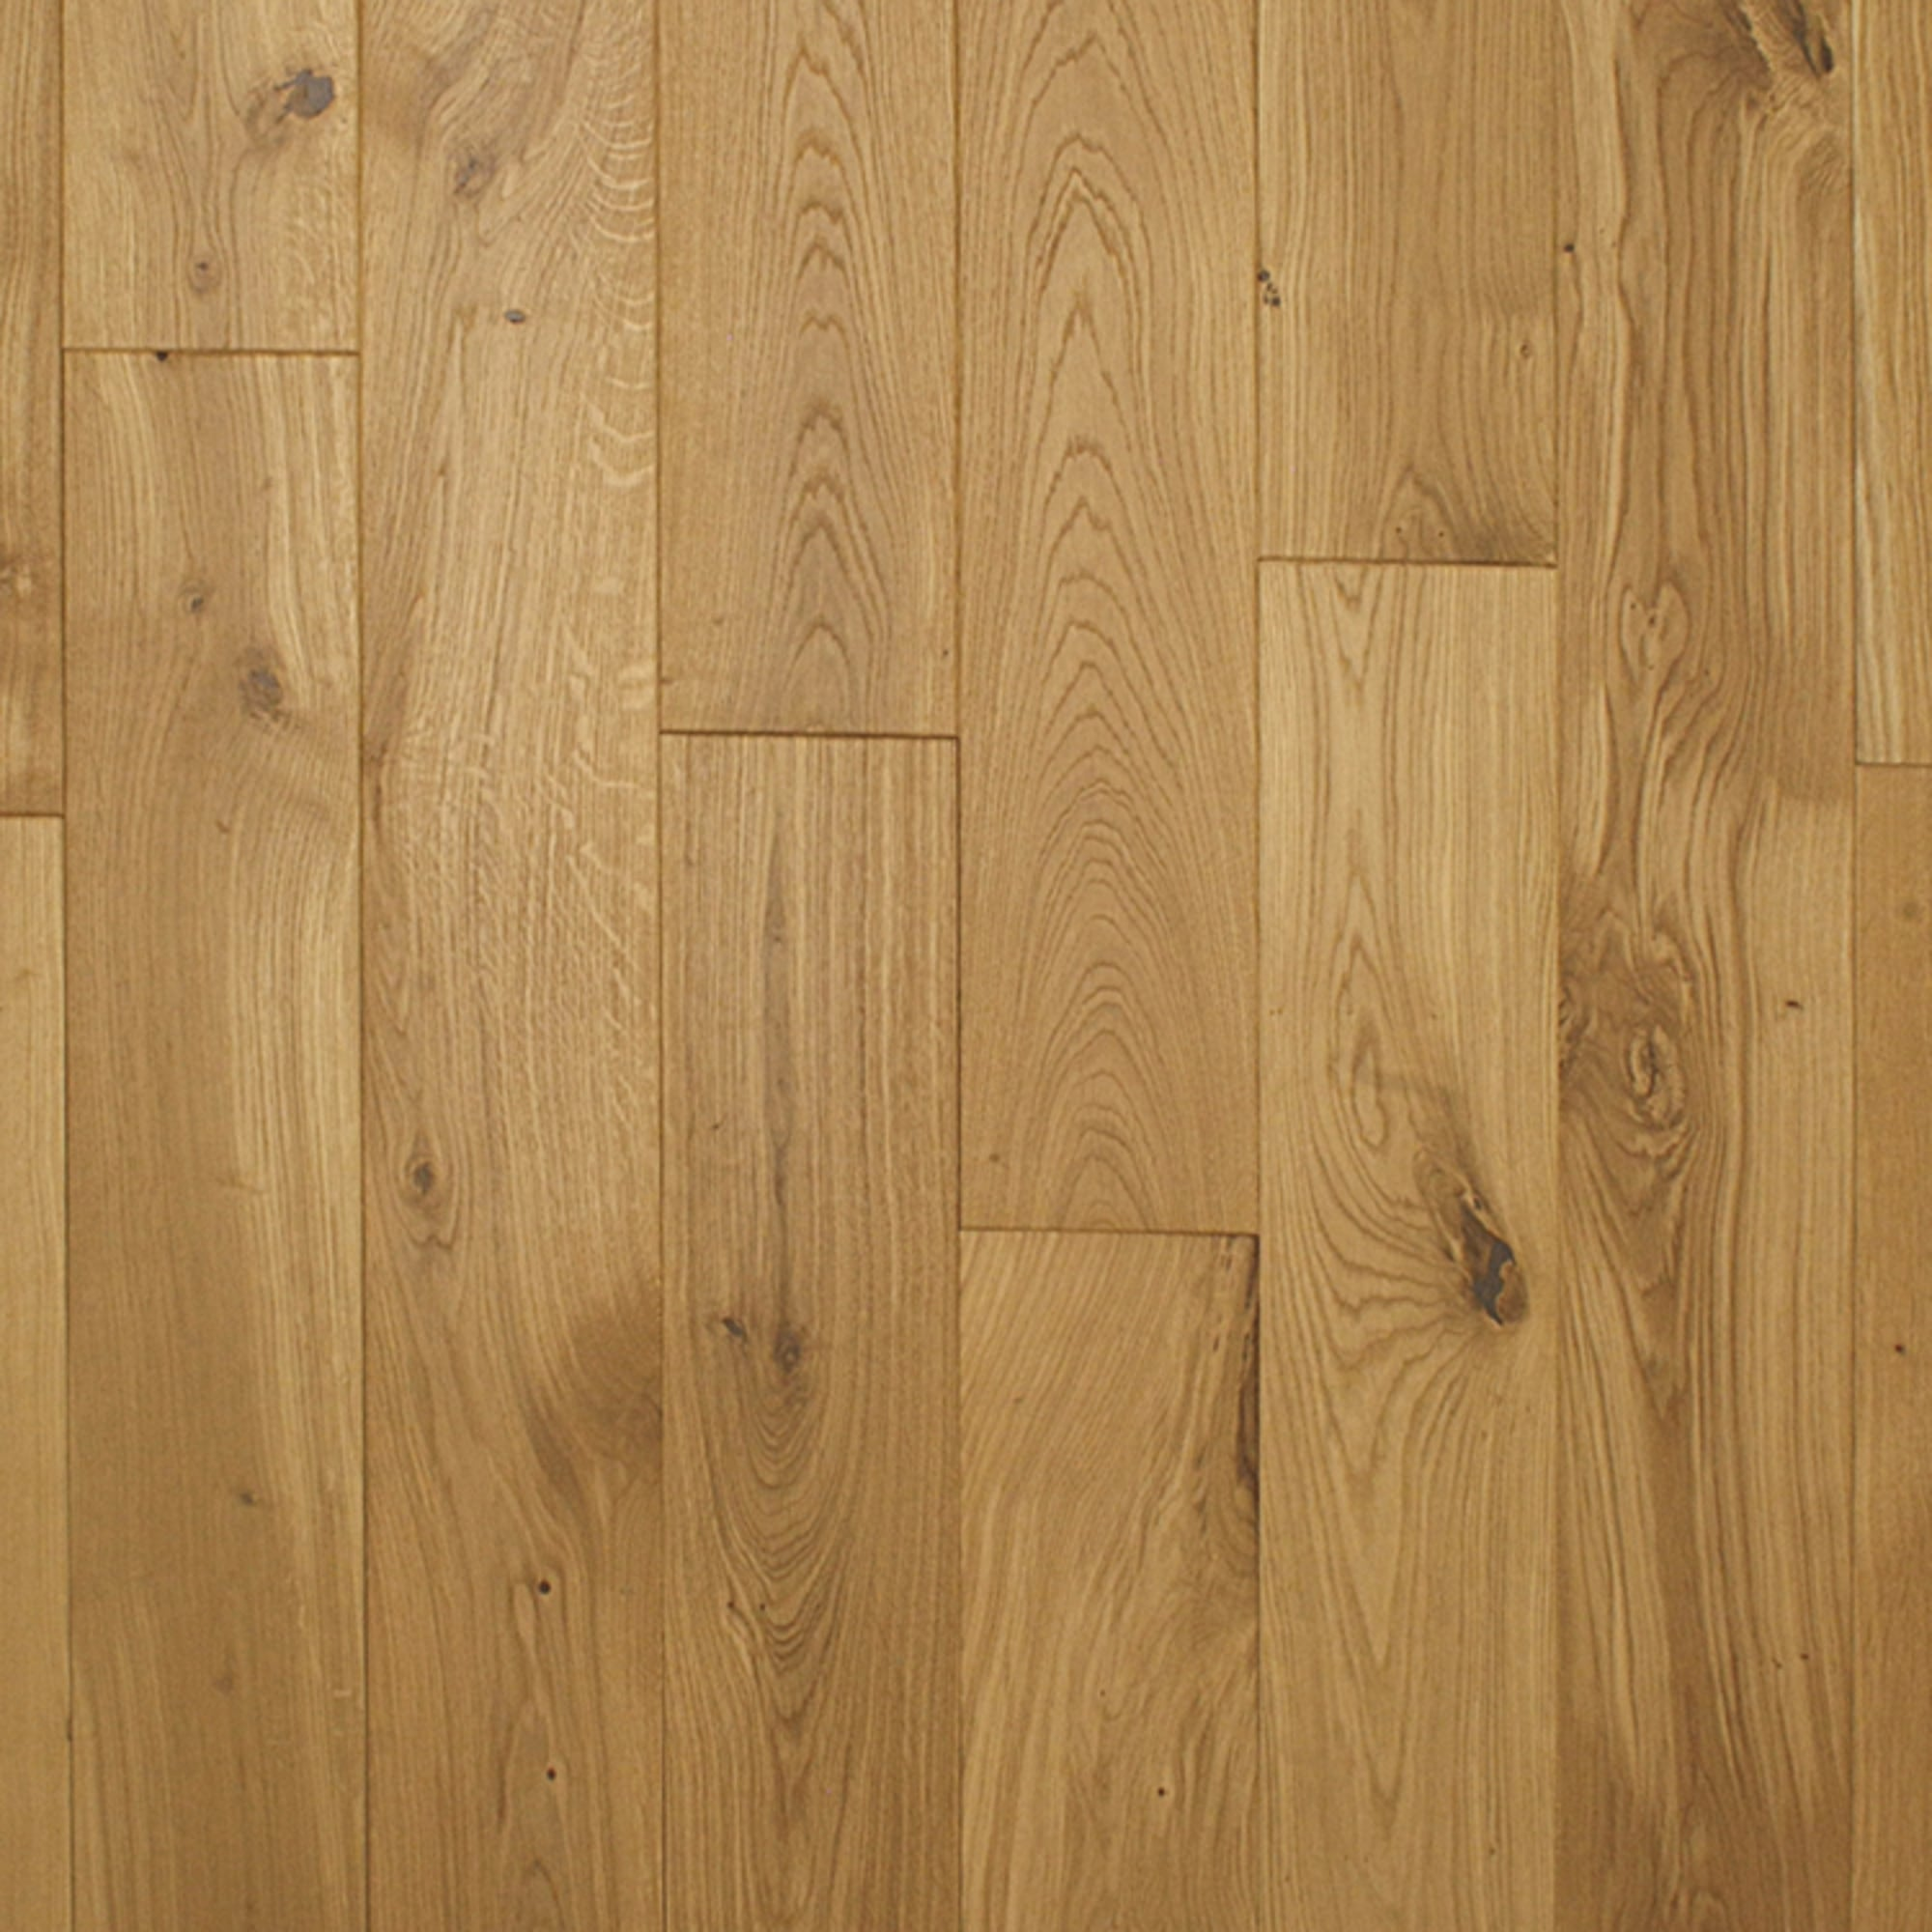 Wood flooring european 20x150mm brushed oiled solid oak for Solid oak wood flooring